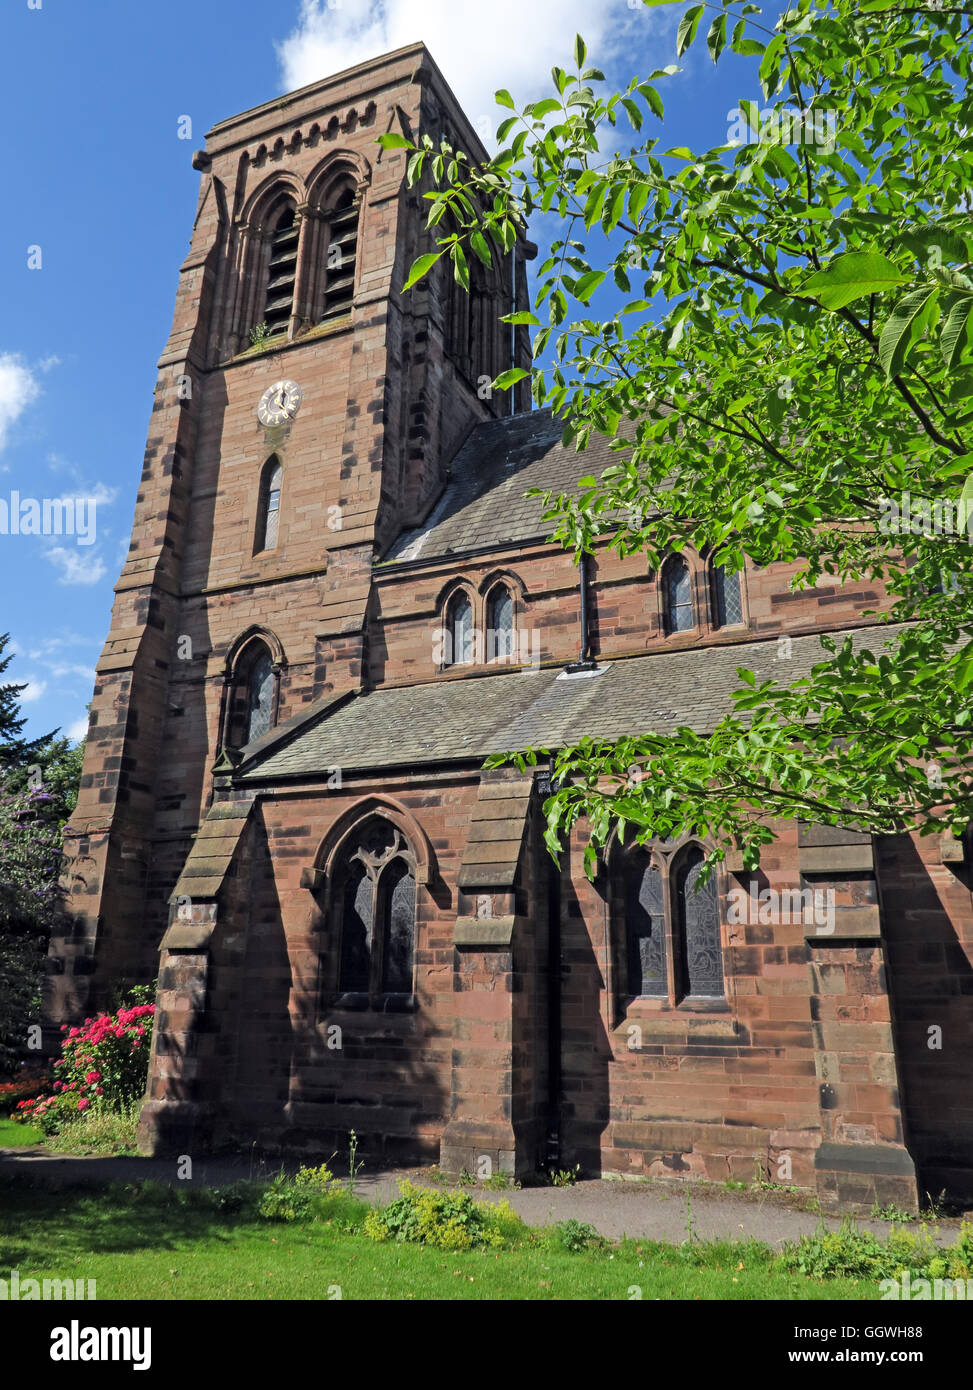 saint,Cheshire,England,UK,summer,National,Heritage,List,grade,2,II,Anglican,parish,stone,religion,place,of,worship,tower,bell,chapel,sun,sunny,summer,in,red,sandstone,with,Westmorland,slate,roof,St Matthews,National Heritage List,parish church,Bell Tower,GoTonySmith,@HotpixUK,HotpixUK,United,Kingdom,GB,English,British,Buy Pictures of,Buy Images Of,Images of,Stock Images,United Kingdom,Great Britain